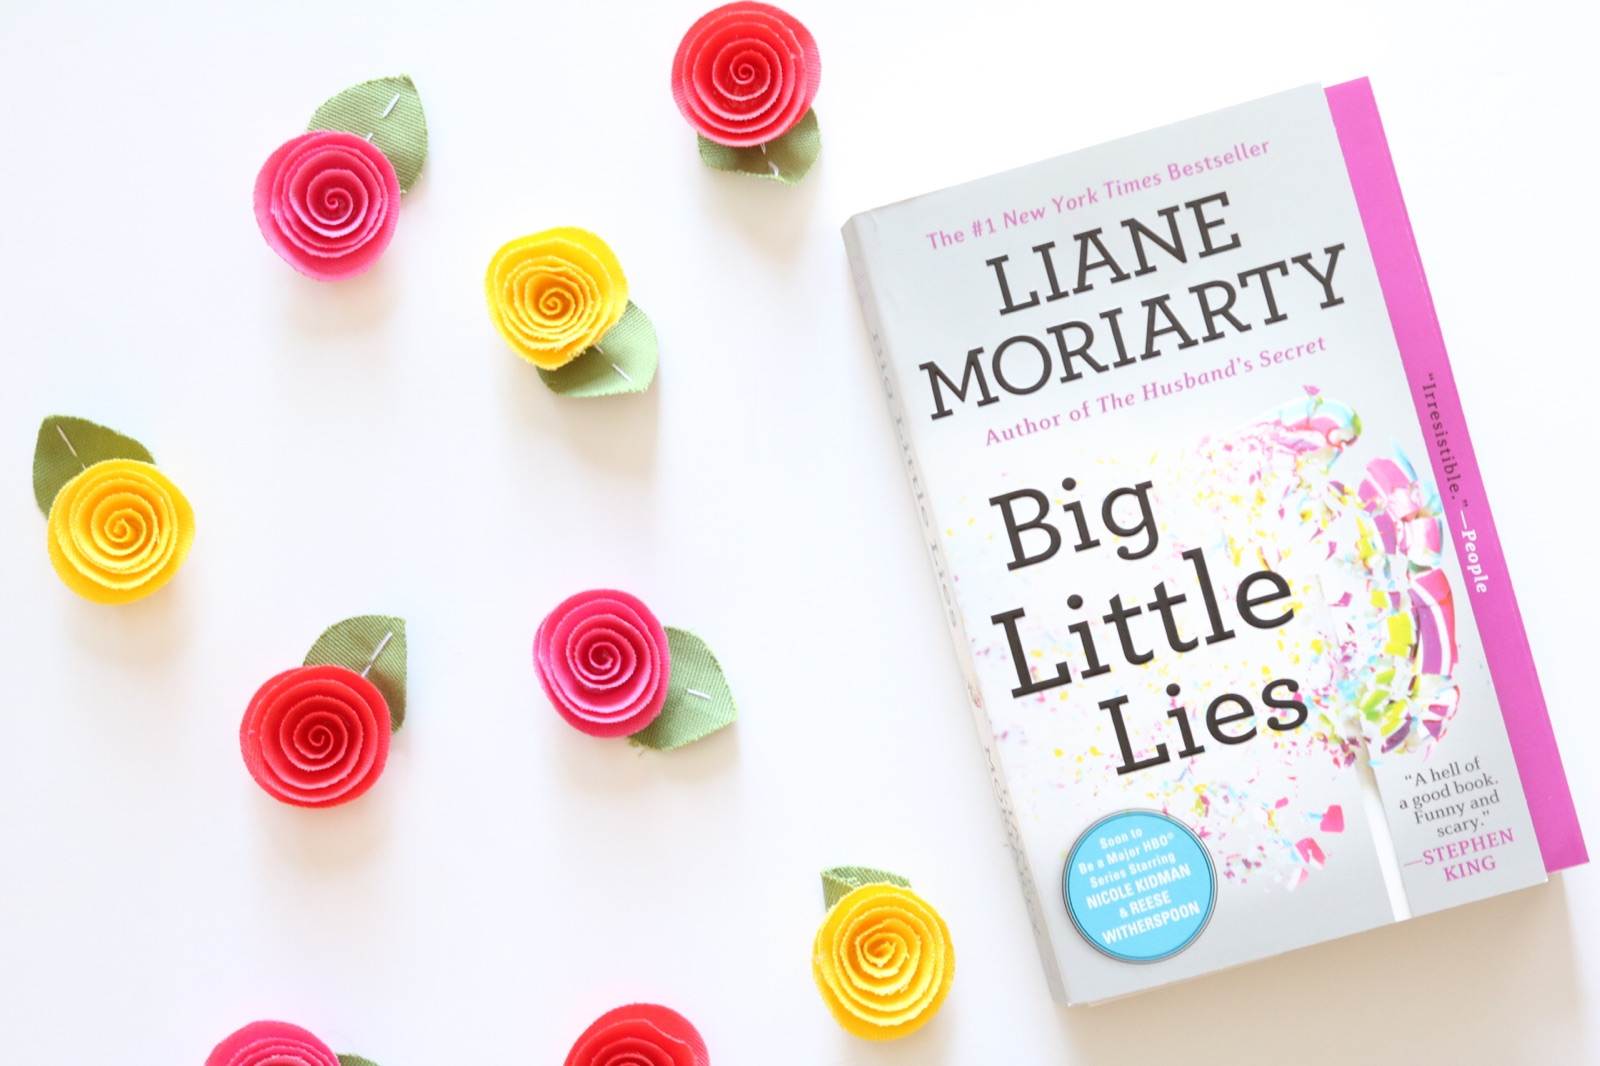 Big Little Lies - SUGAR MAPLE book club Review - Join the book club!